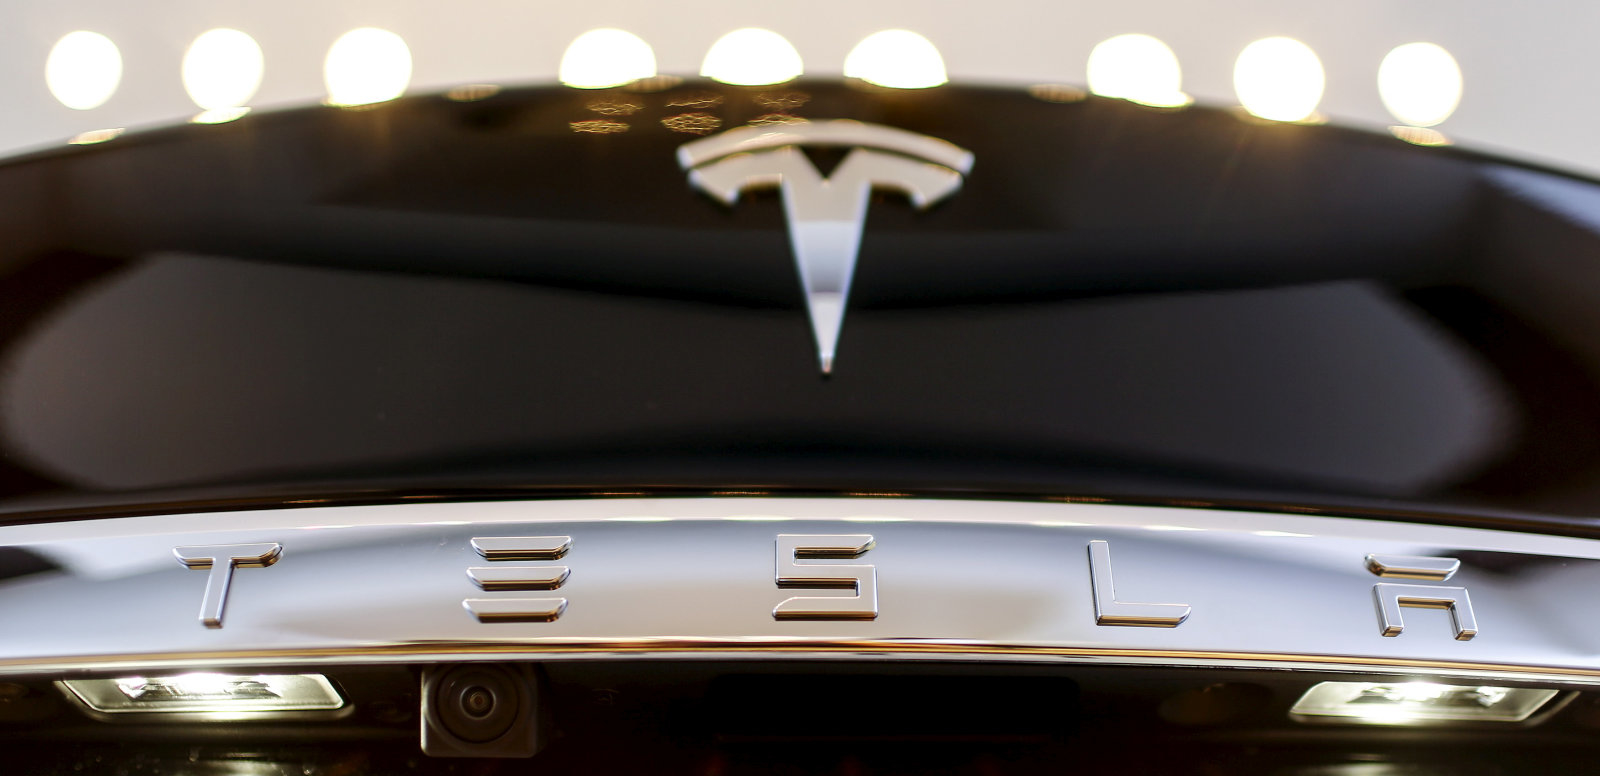 Tesla is recalling 53,000 vehicles due to electric parking brake issue